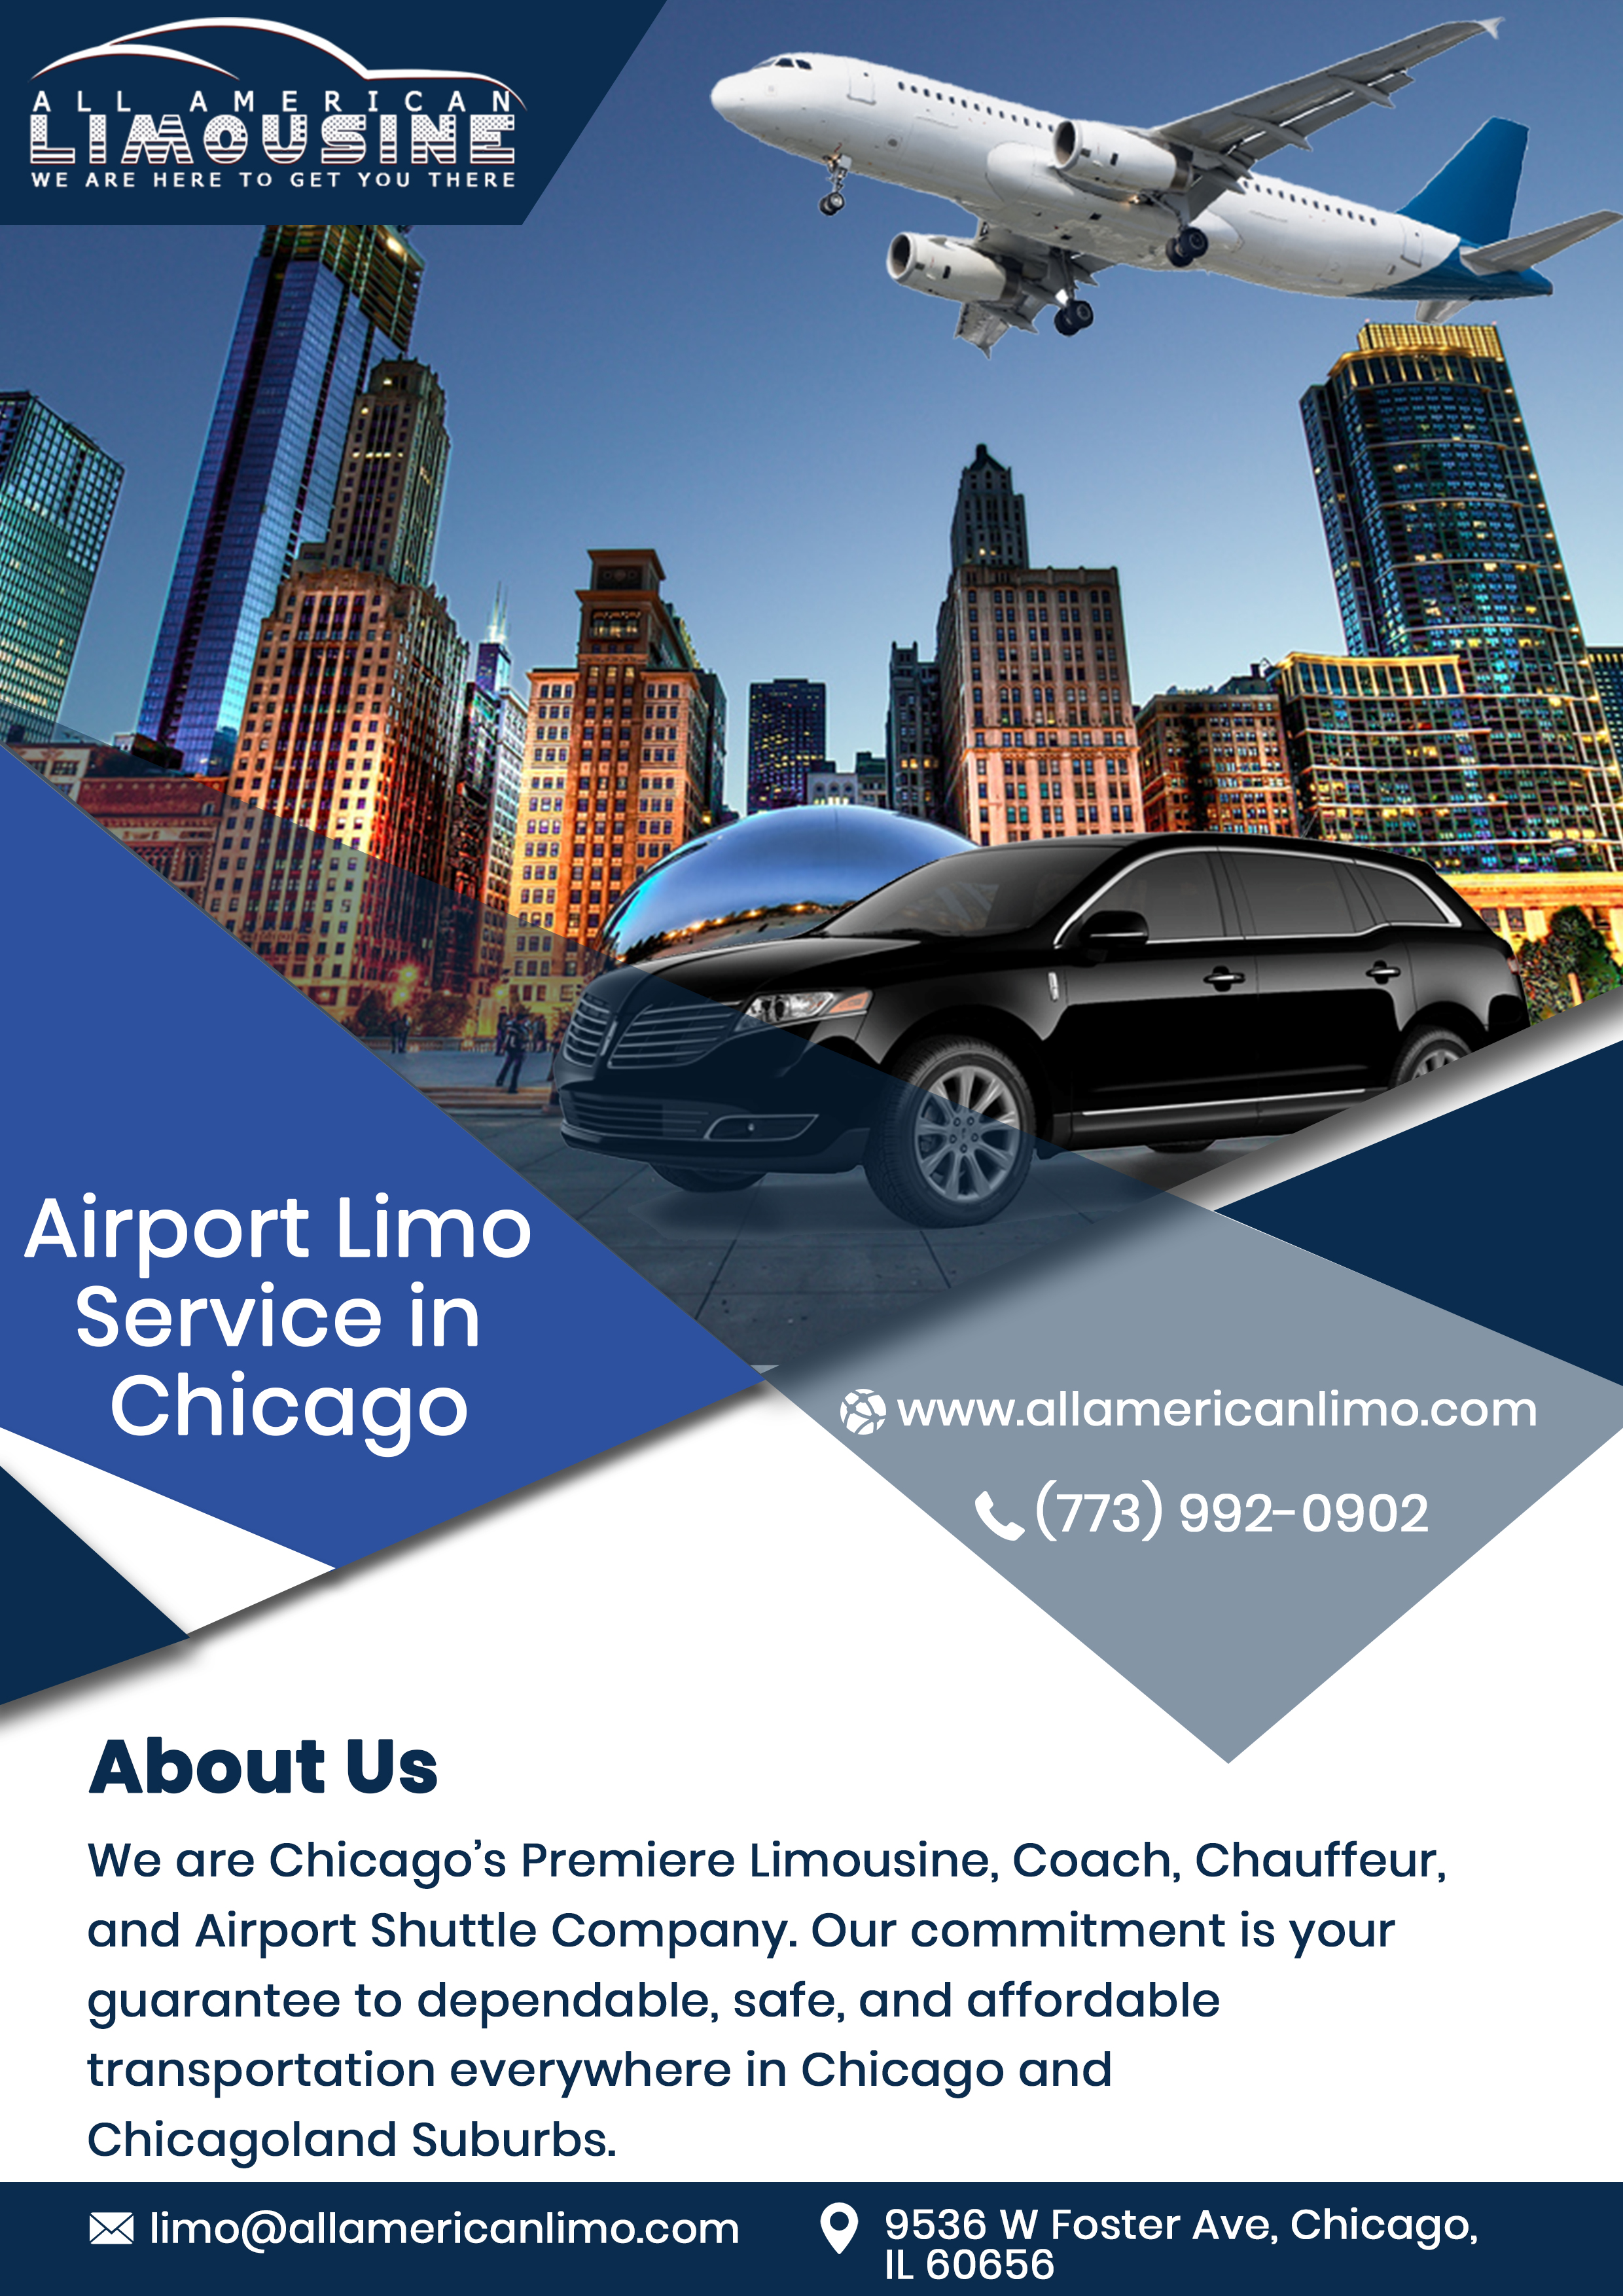 Airport Limo Service Chicago, Chicago Limo